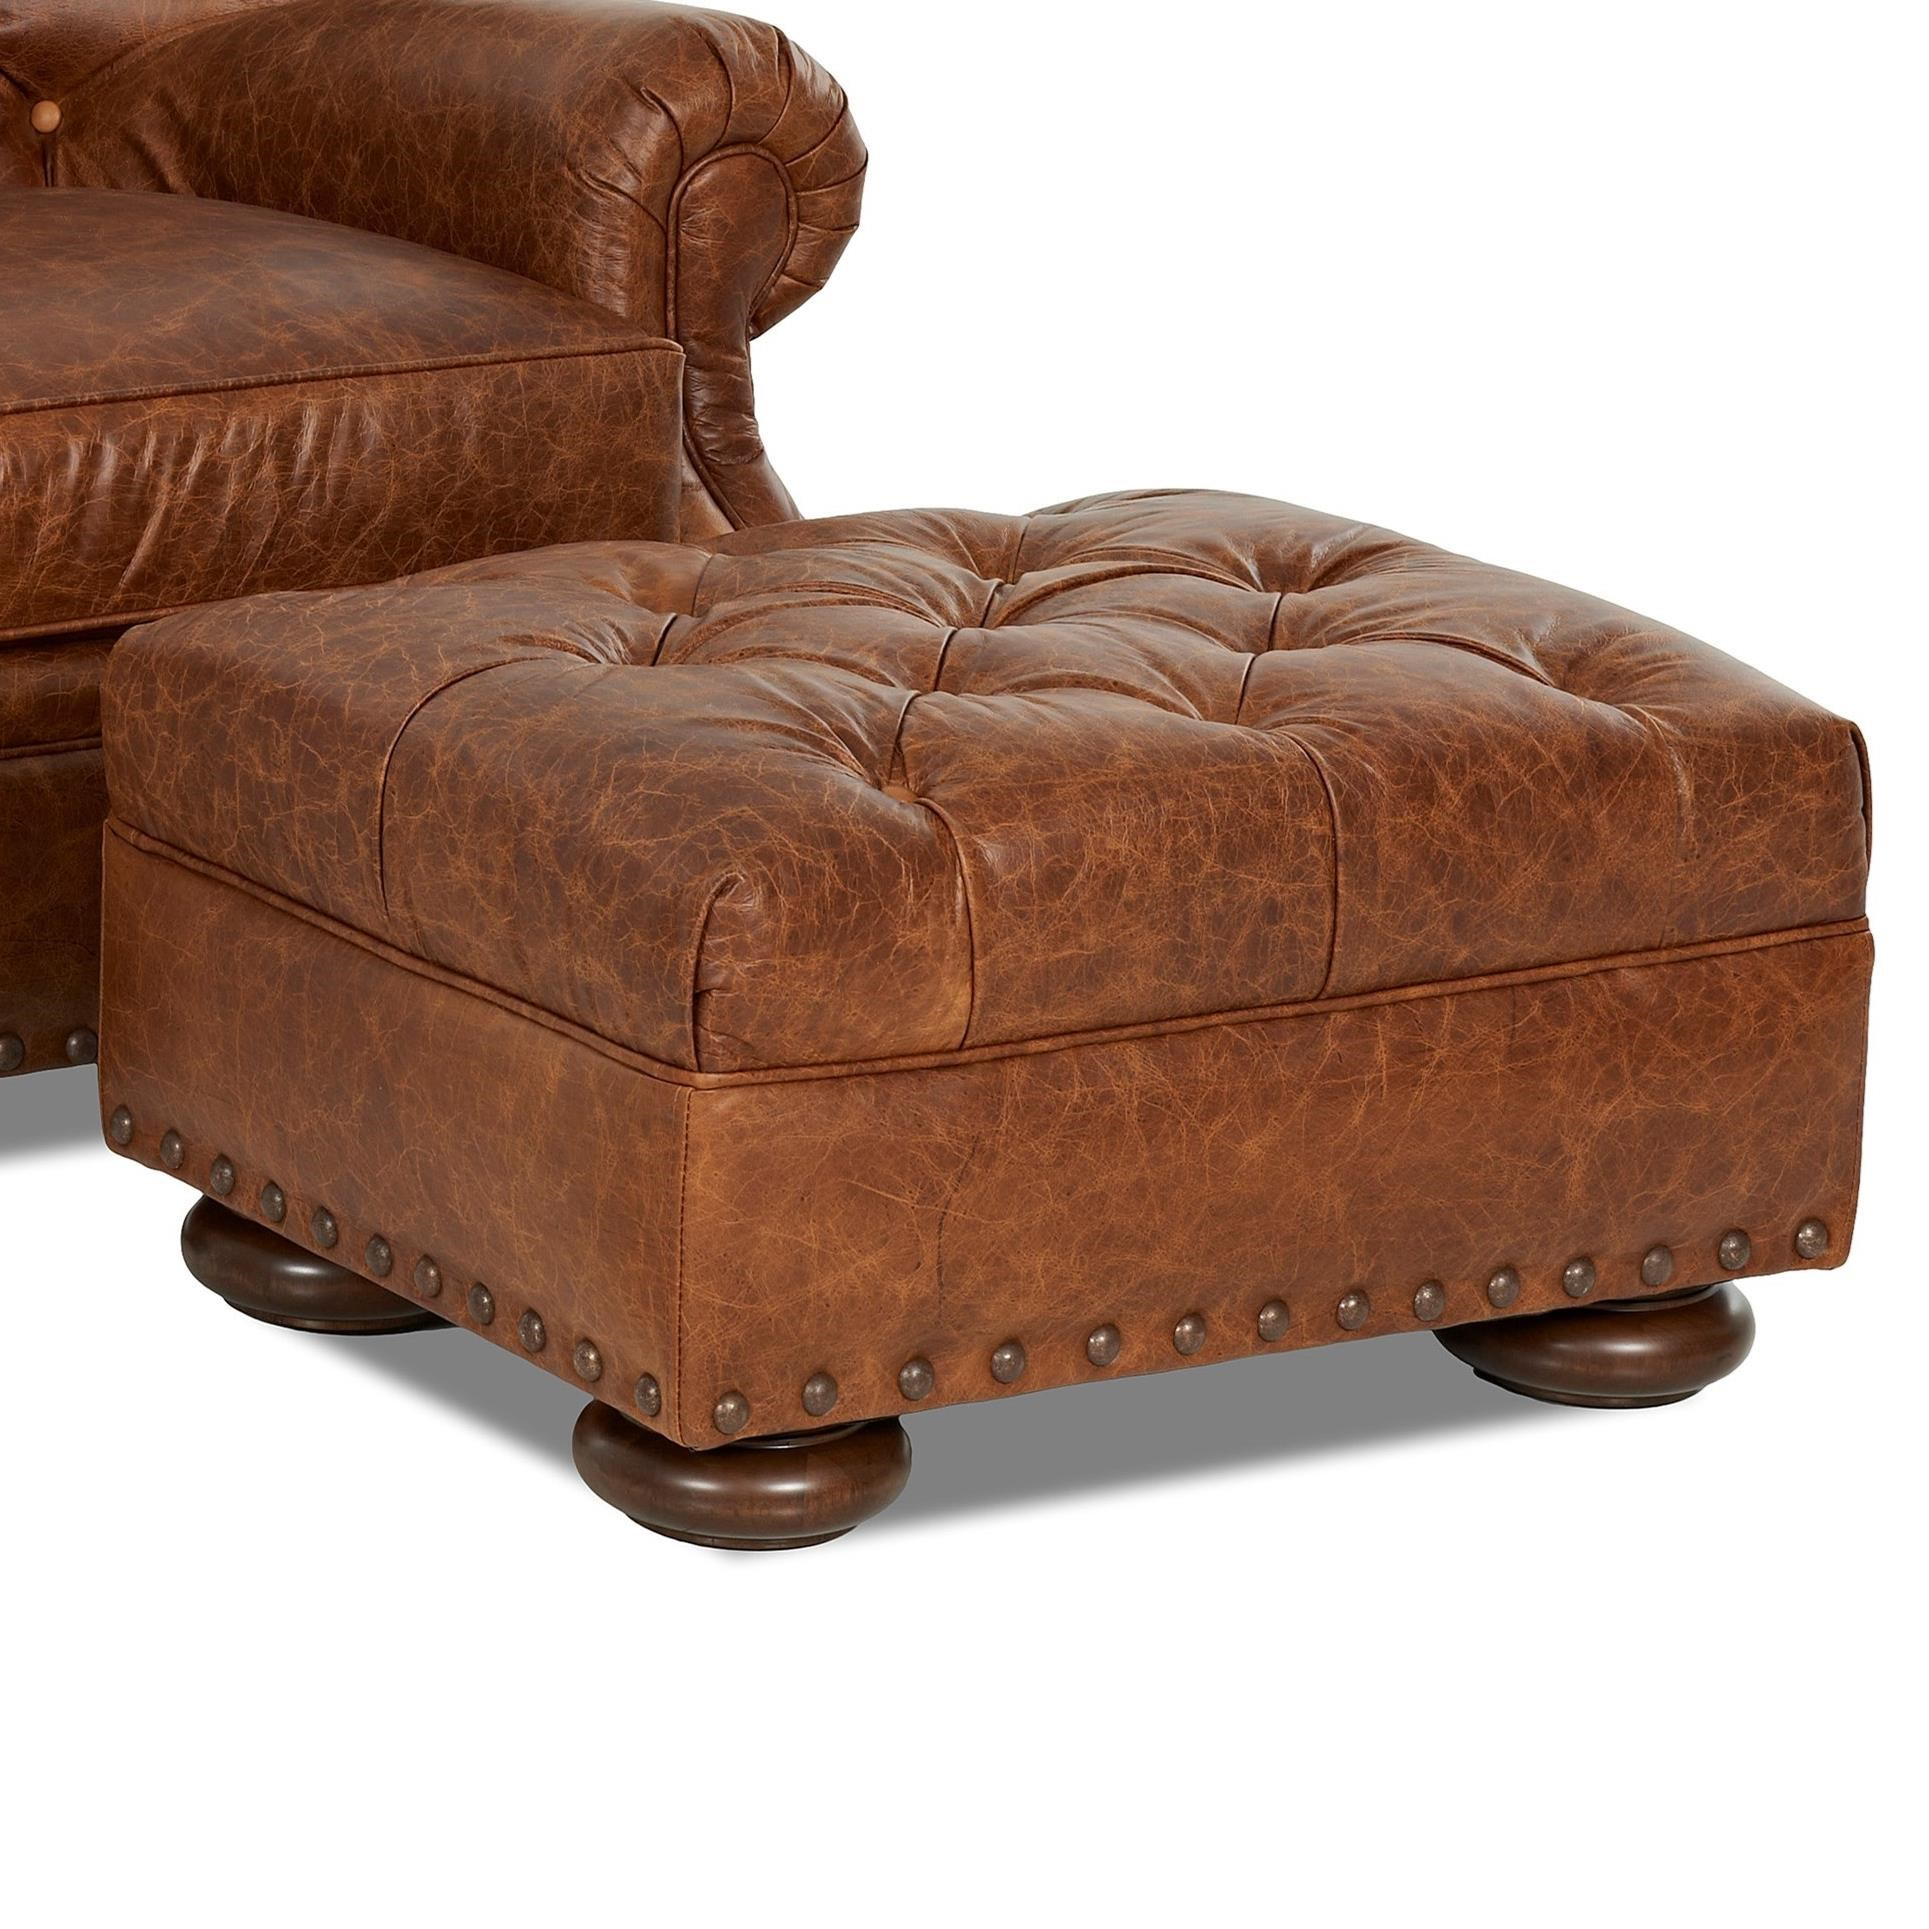 large leather chair with ottoman stackable outdoor chairs klaussner aspen ld39910 otto tufted